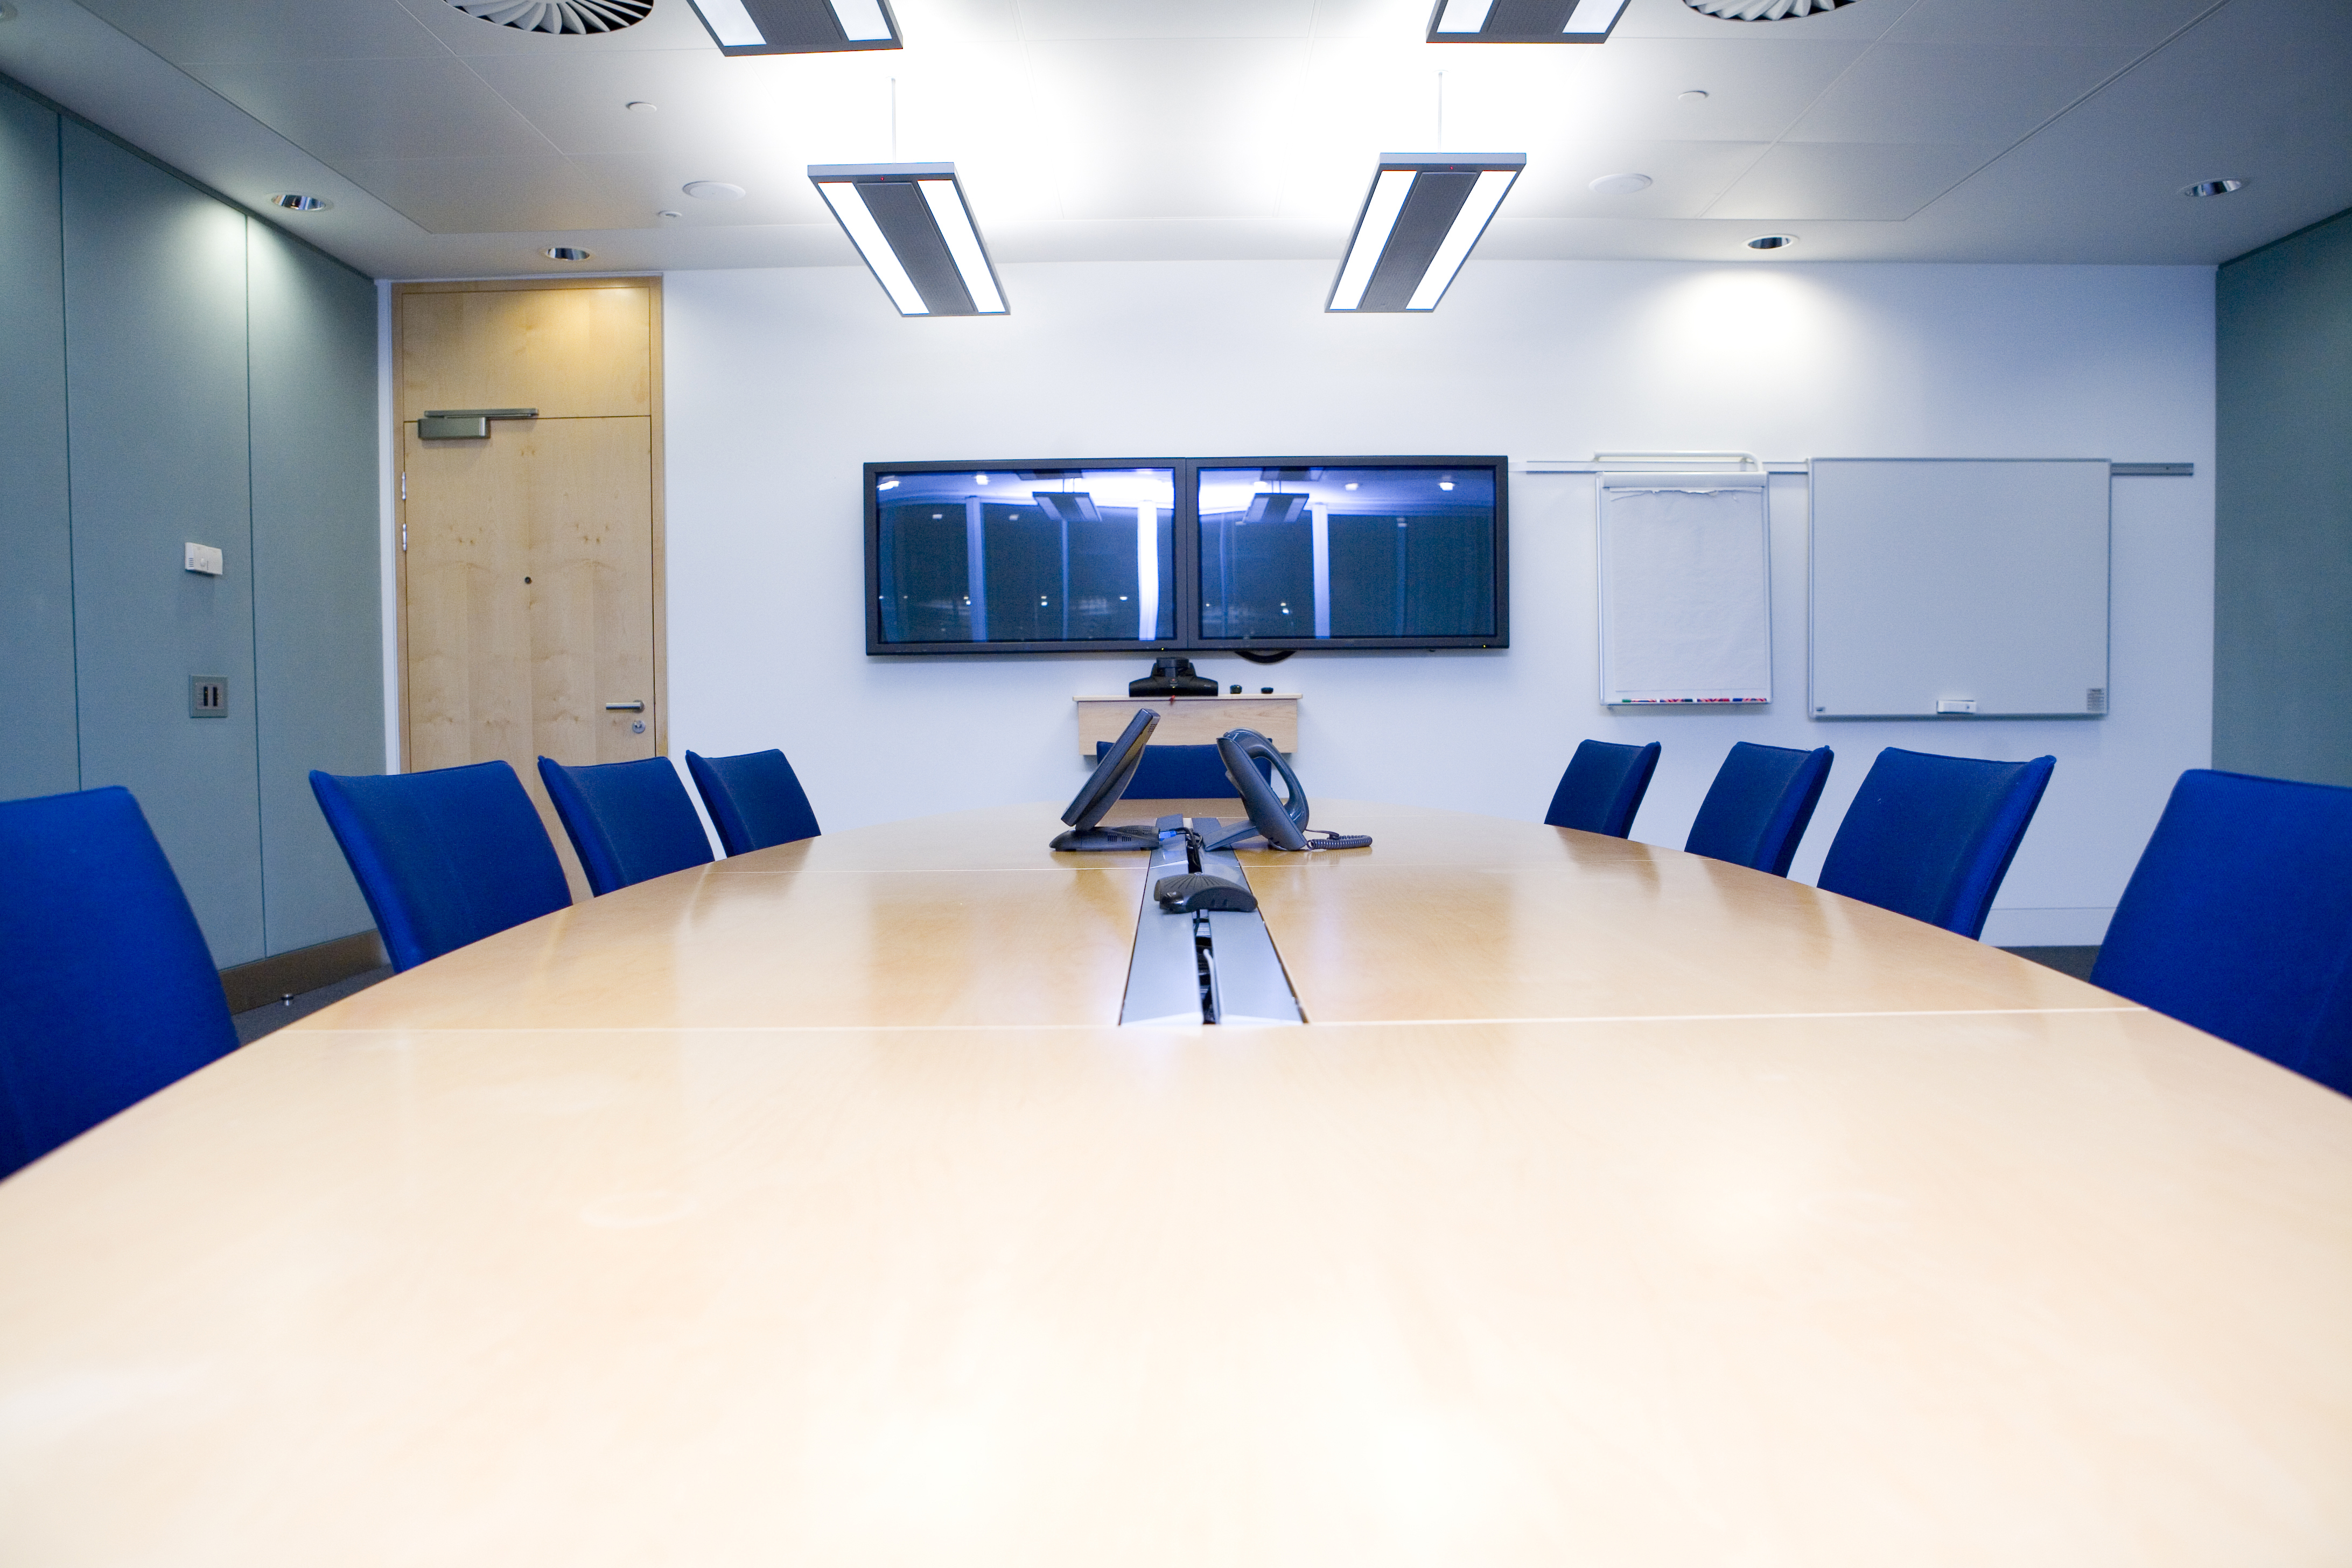 Audiovisual Technology implemented by a professional delivers best business result